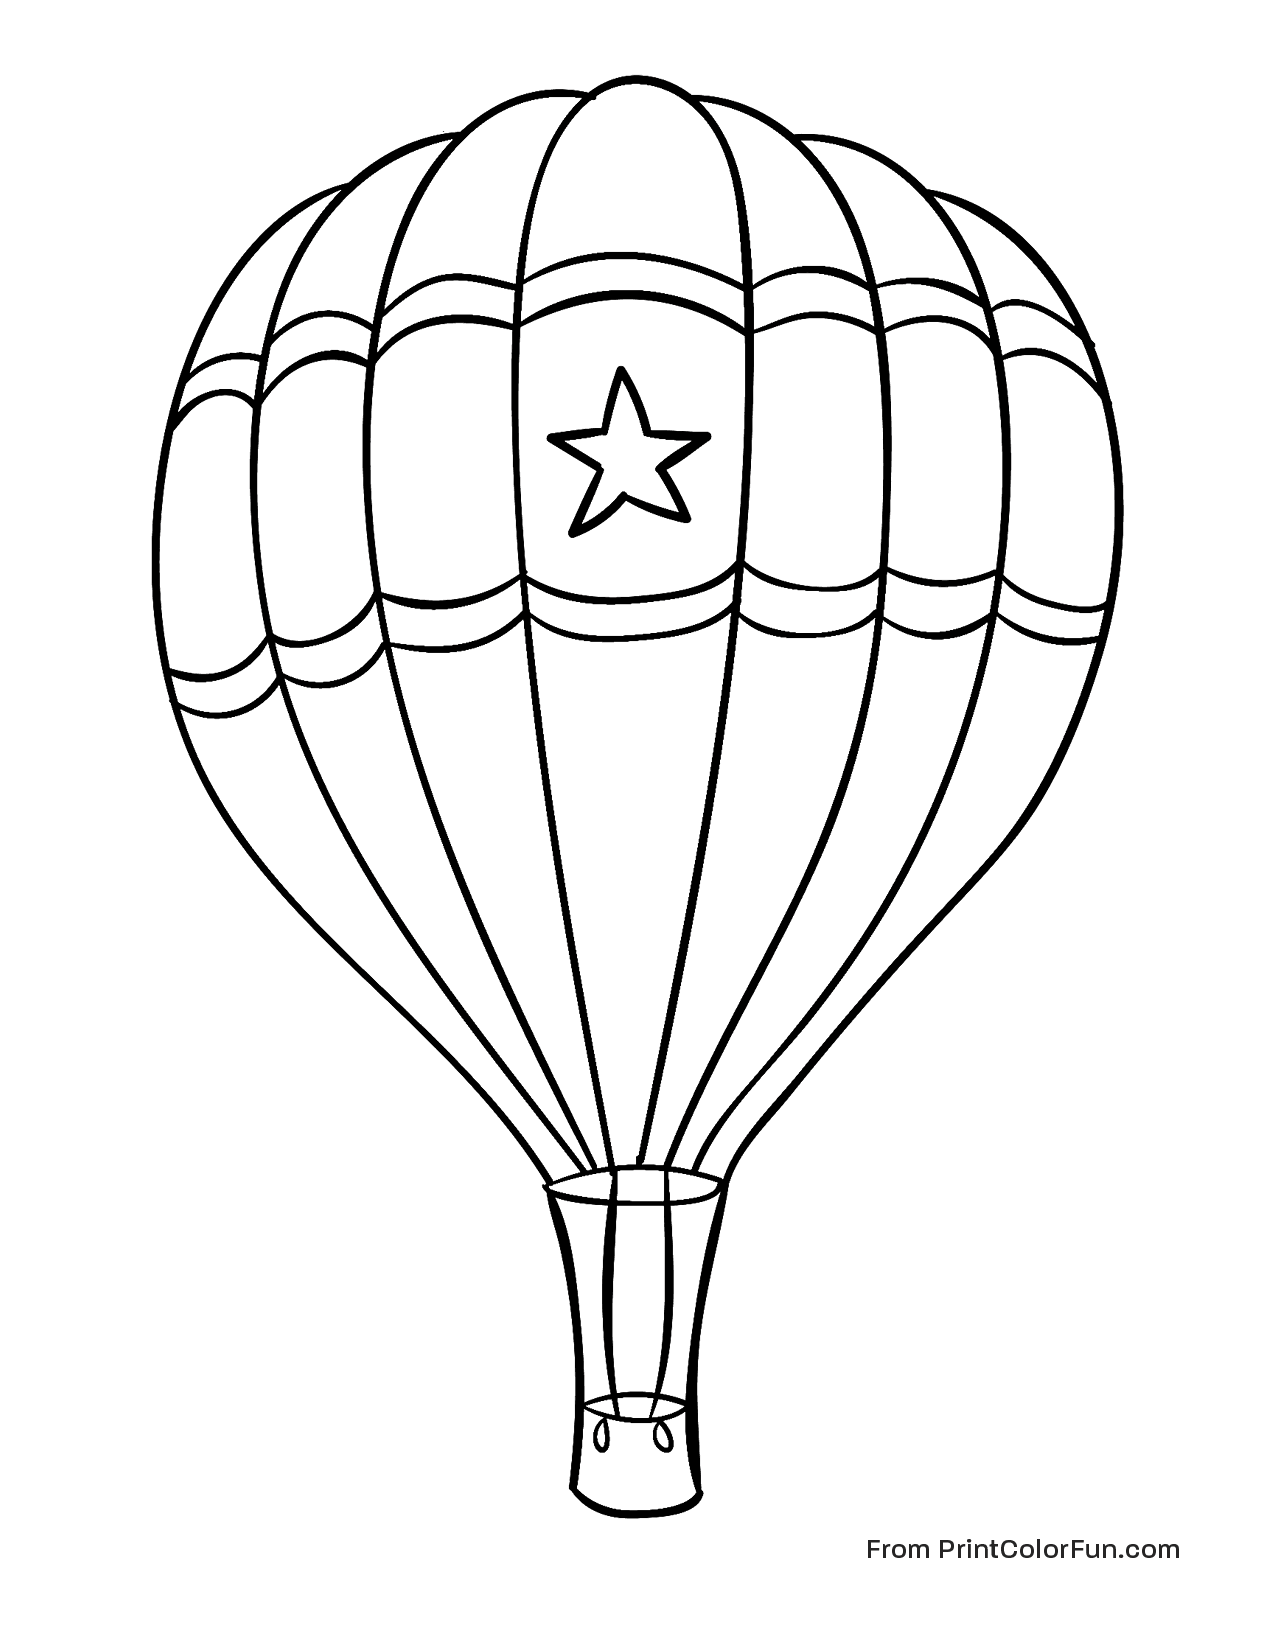 Hot Air Balloon Coloring Pages To Print Out Pictures To Pin